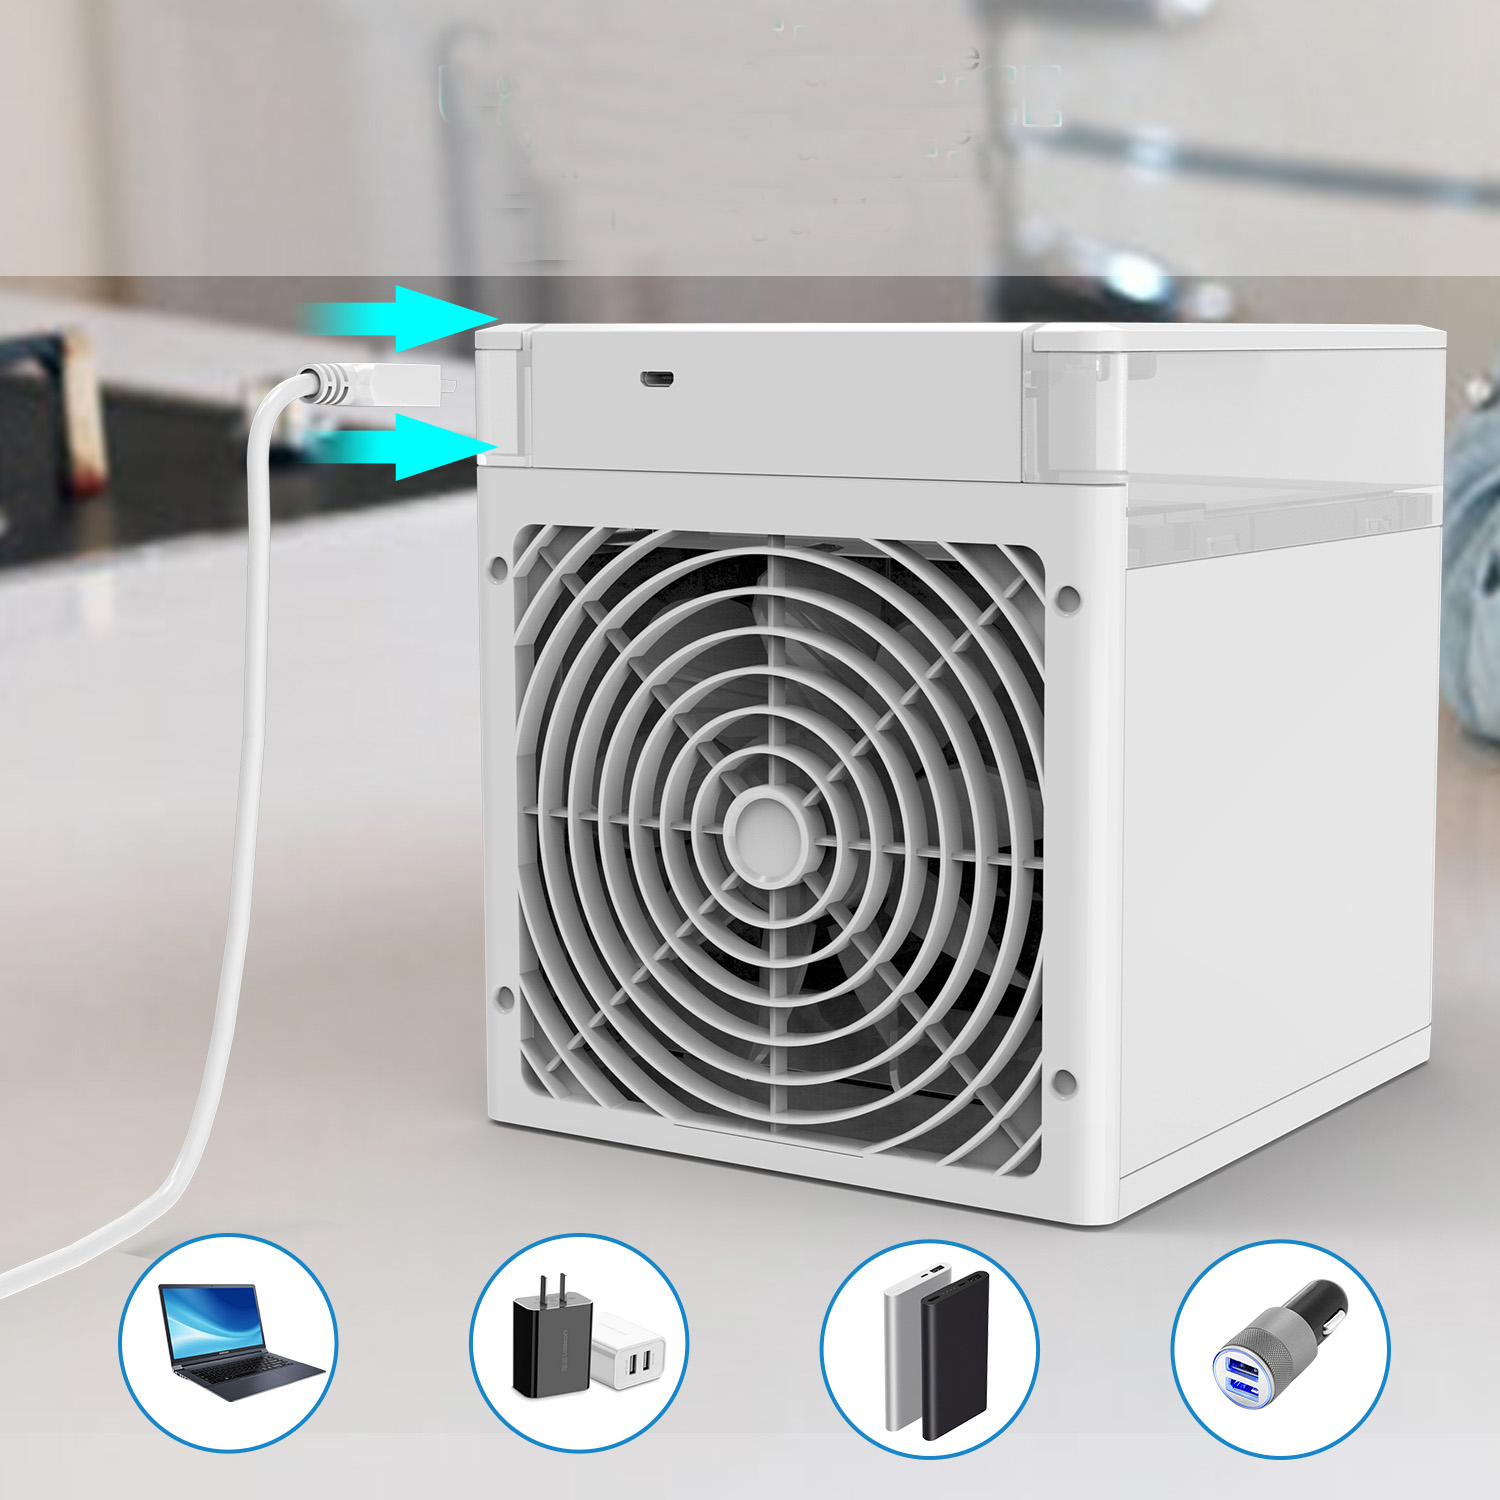 10W Uv-c Portable USB Cooler Powerful Cooling Ac NexFan RPG Light Refrigeration Humidification Purify Room Aaromatherapy